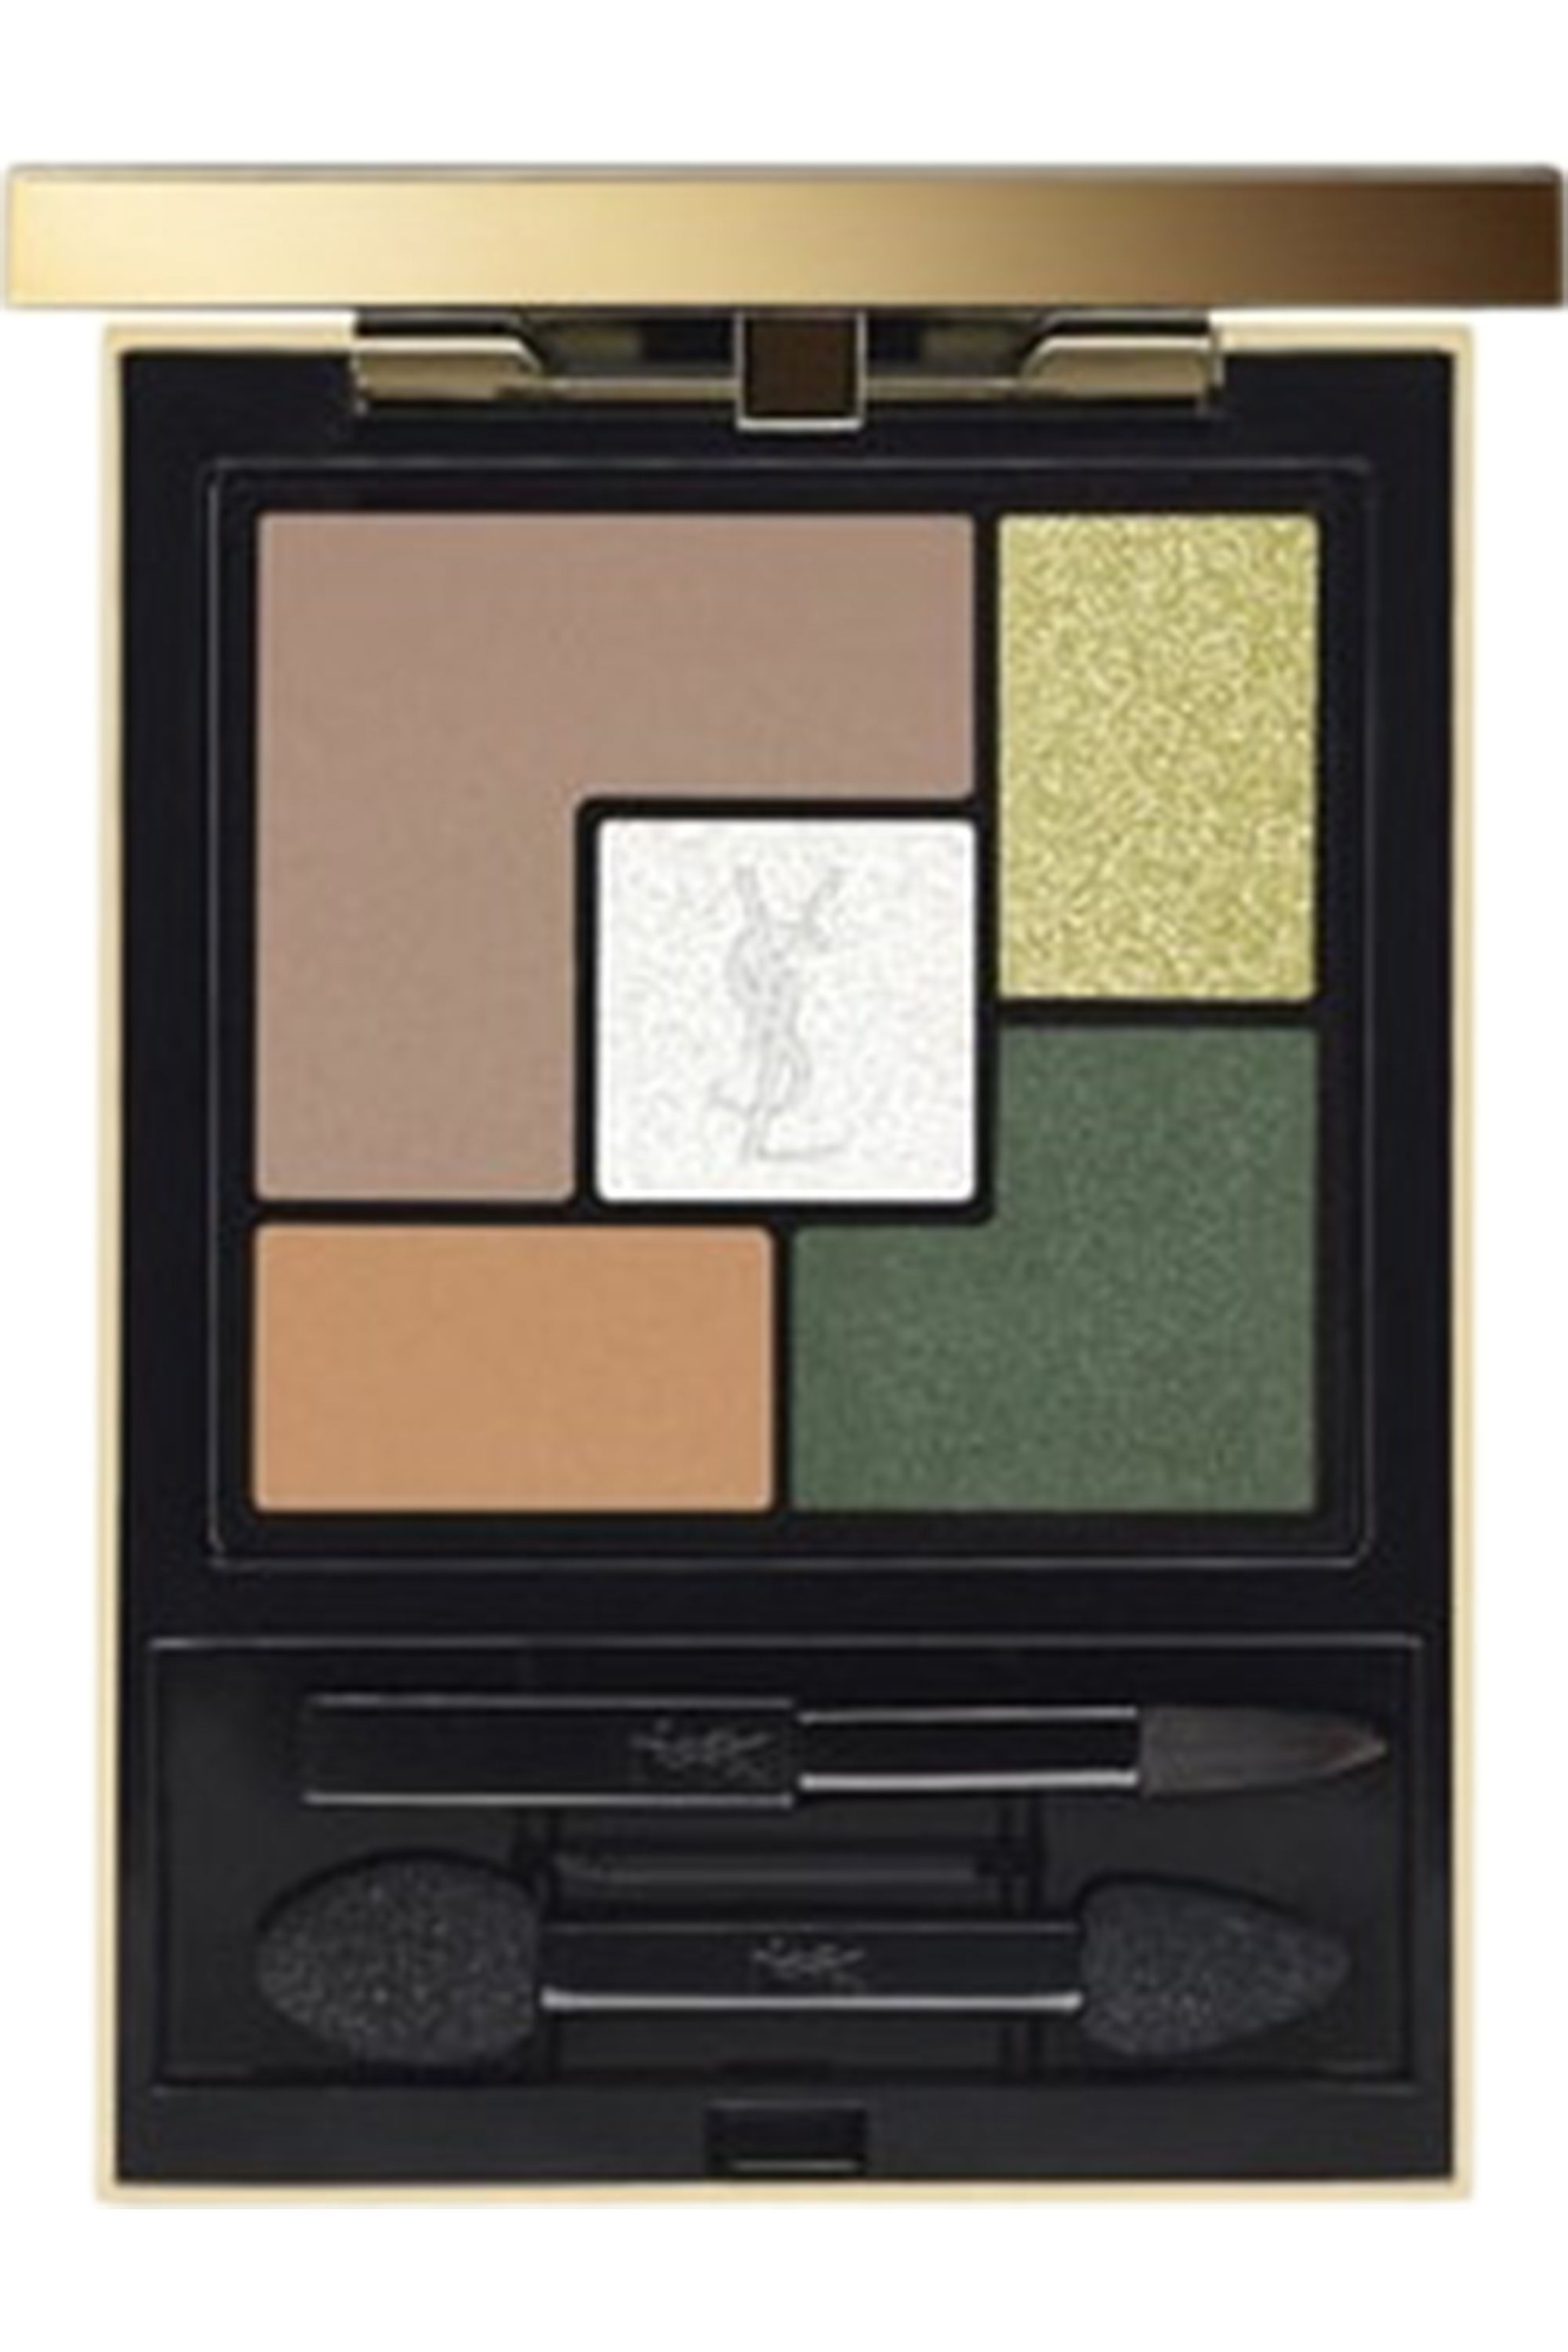 Blissim : Yves Saint Laurent - Couture Palette 5 Couleurs - N°16 Decadent Haven